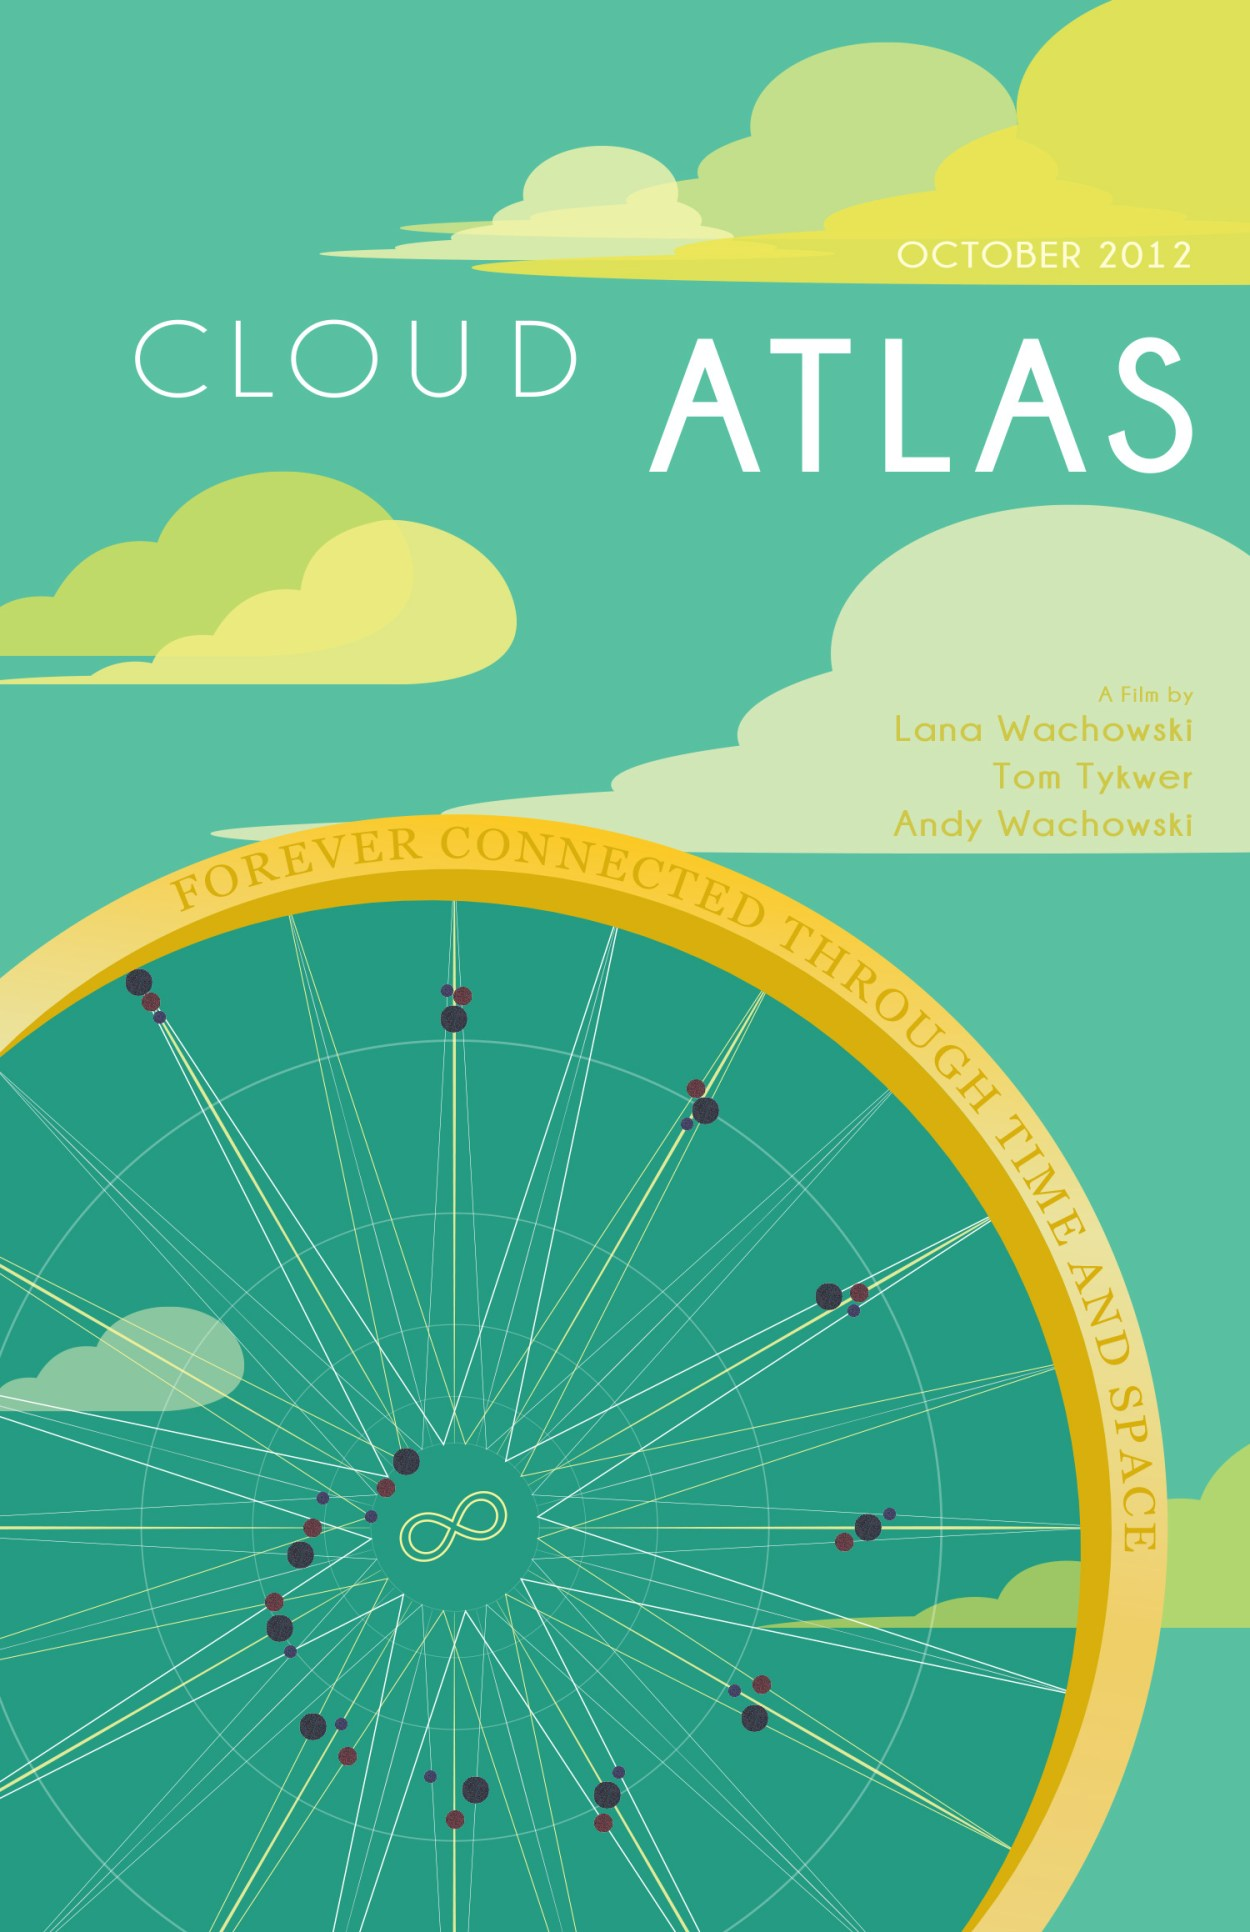 Cloud-Atlas_1.jpg?fit=1500%2C2318